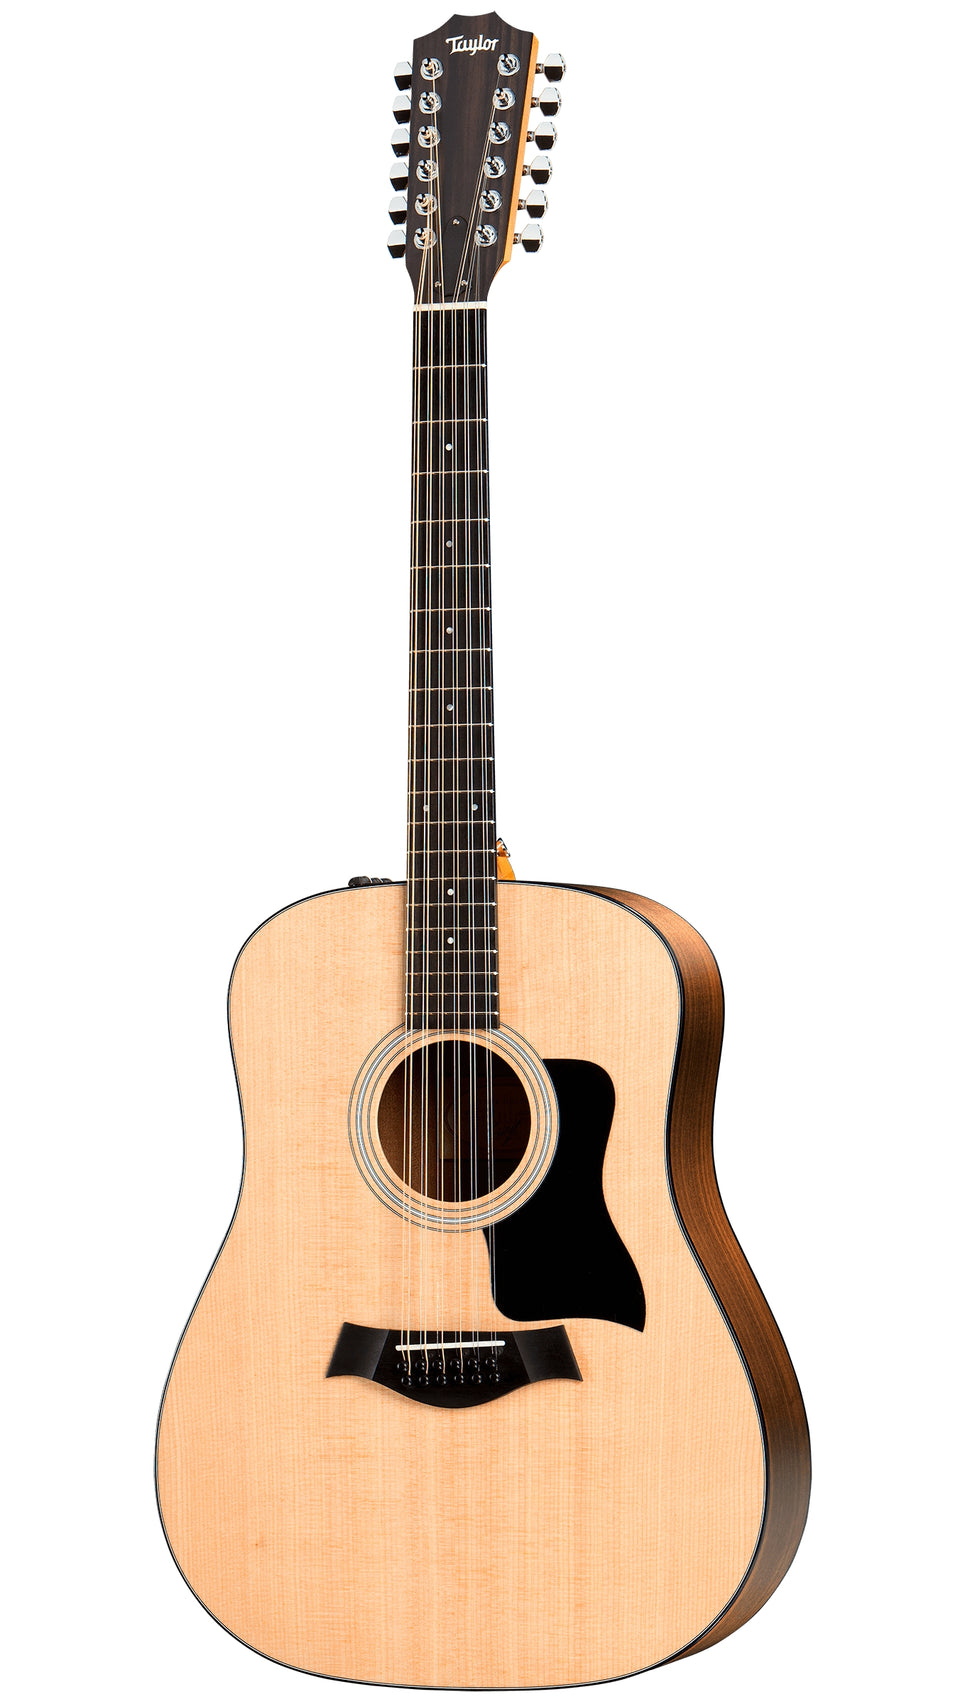 Taylor 150e 12 String Acoustic Electric Guitar - Natural